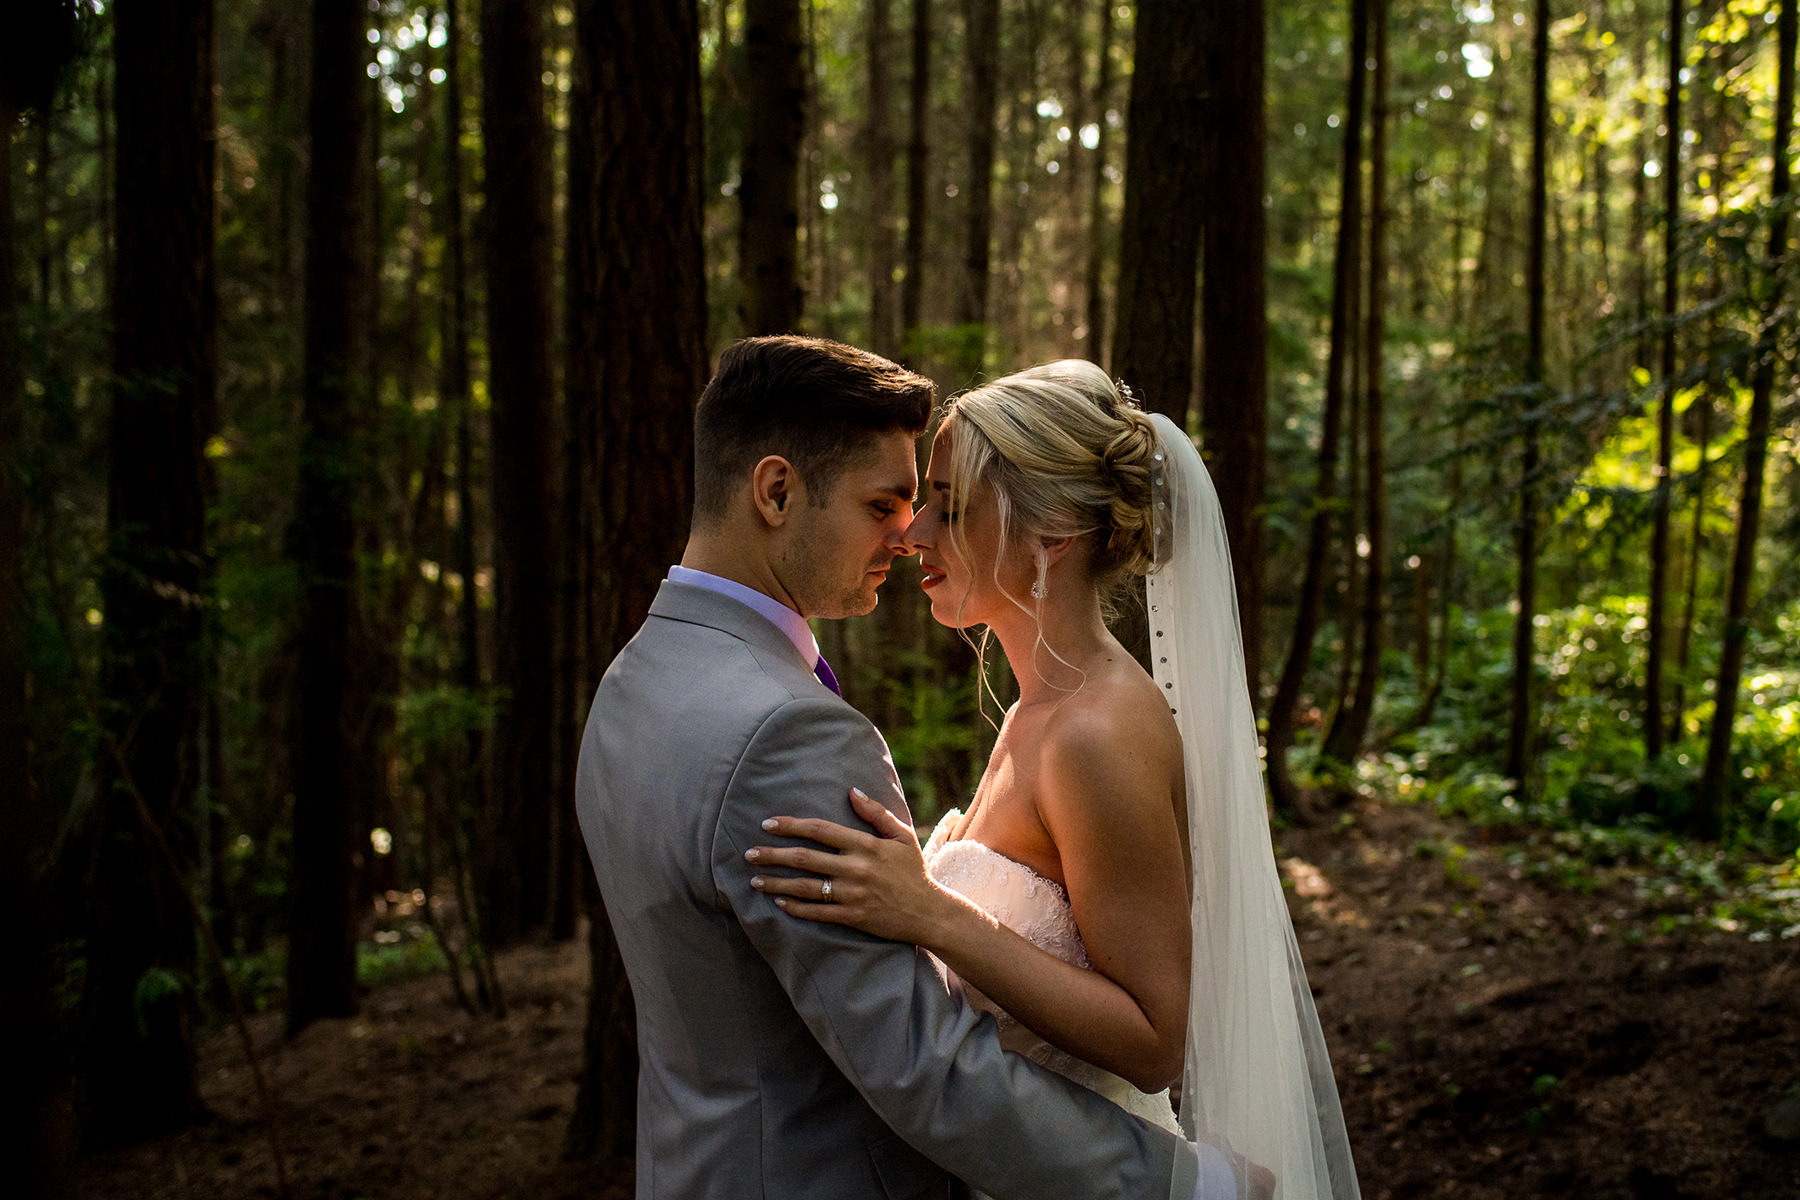 creative wedding portraits in the forest